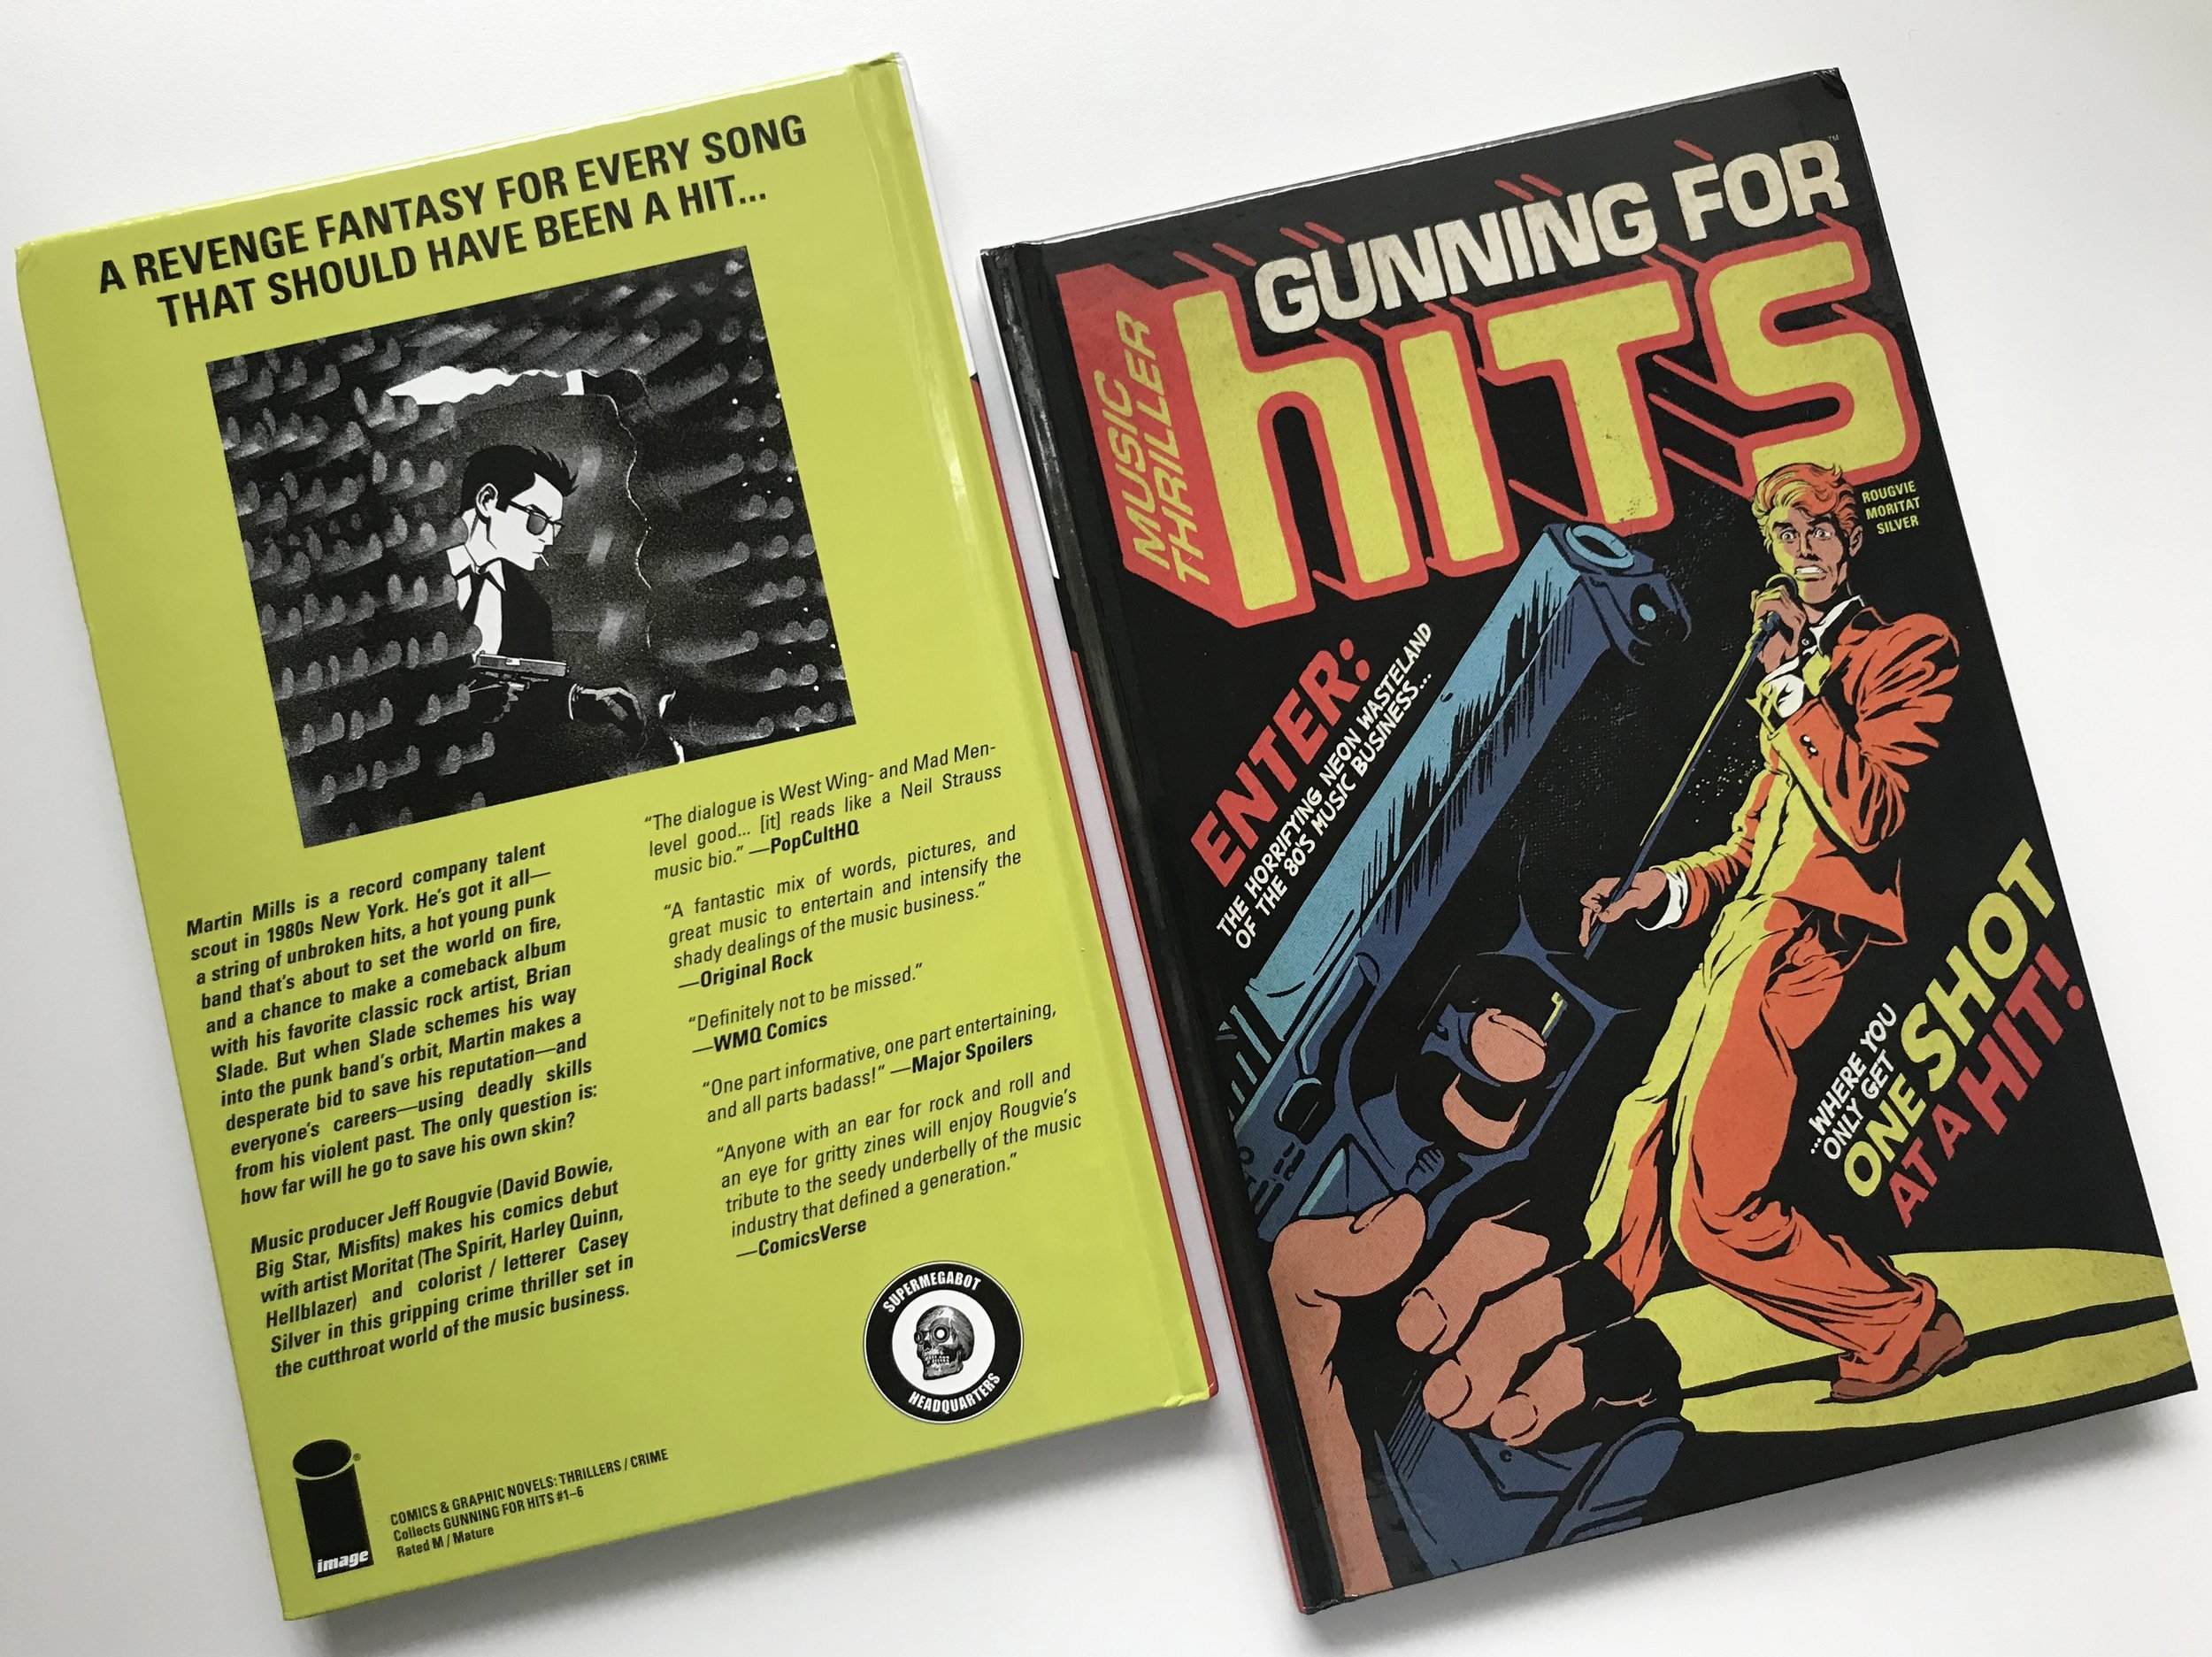 Deluxe limited, signed & numbered hardcover edition with Butcher Billy cover art. Debuted at San Diego Comicon on July 17th.